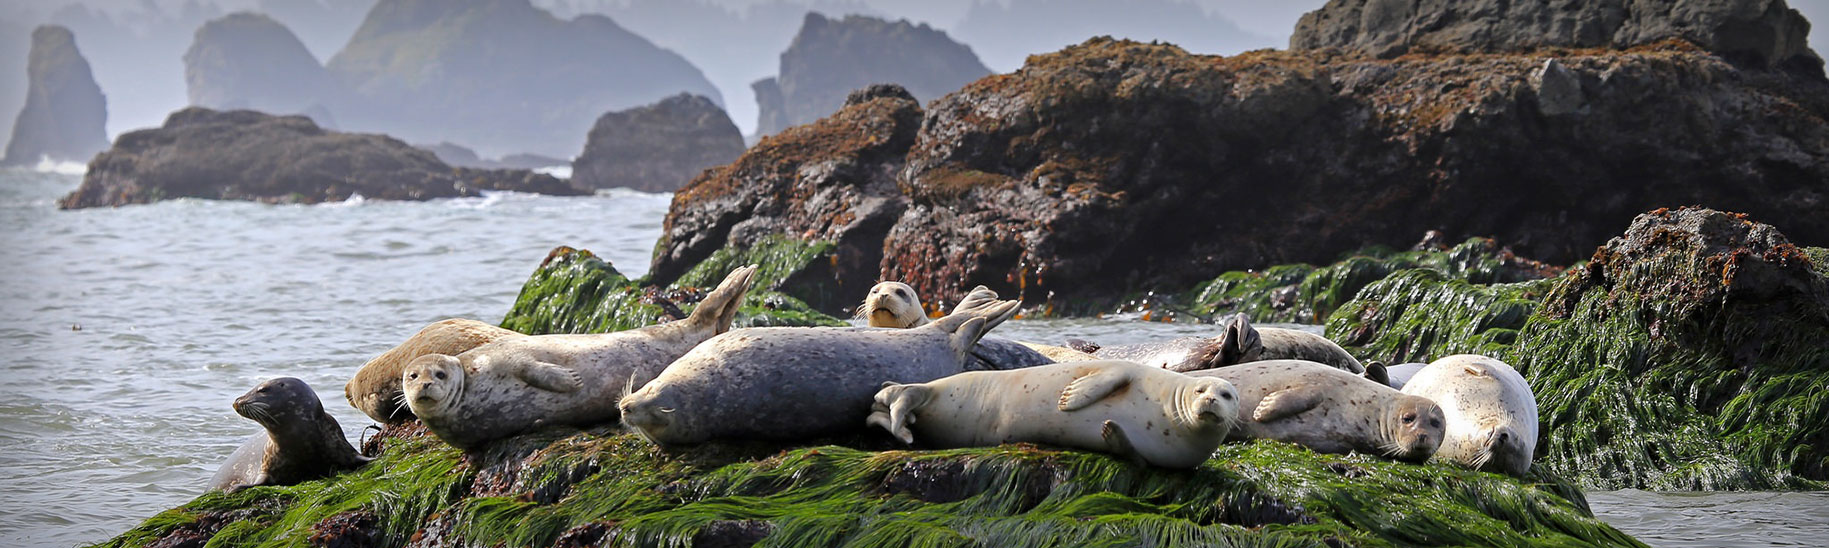 photo of sea lions on rocks